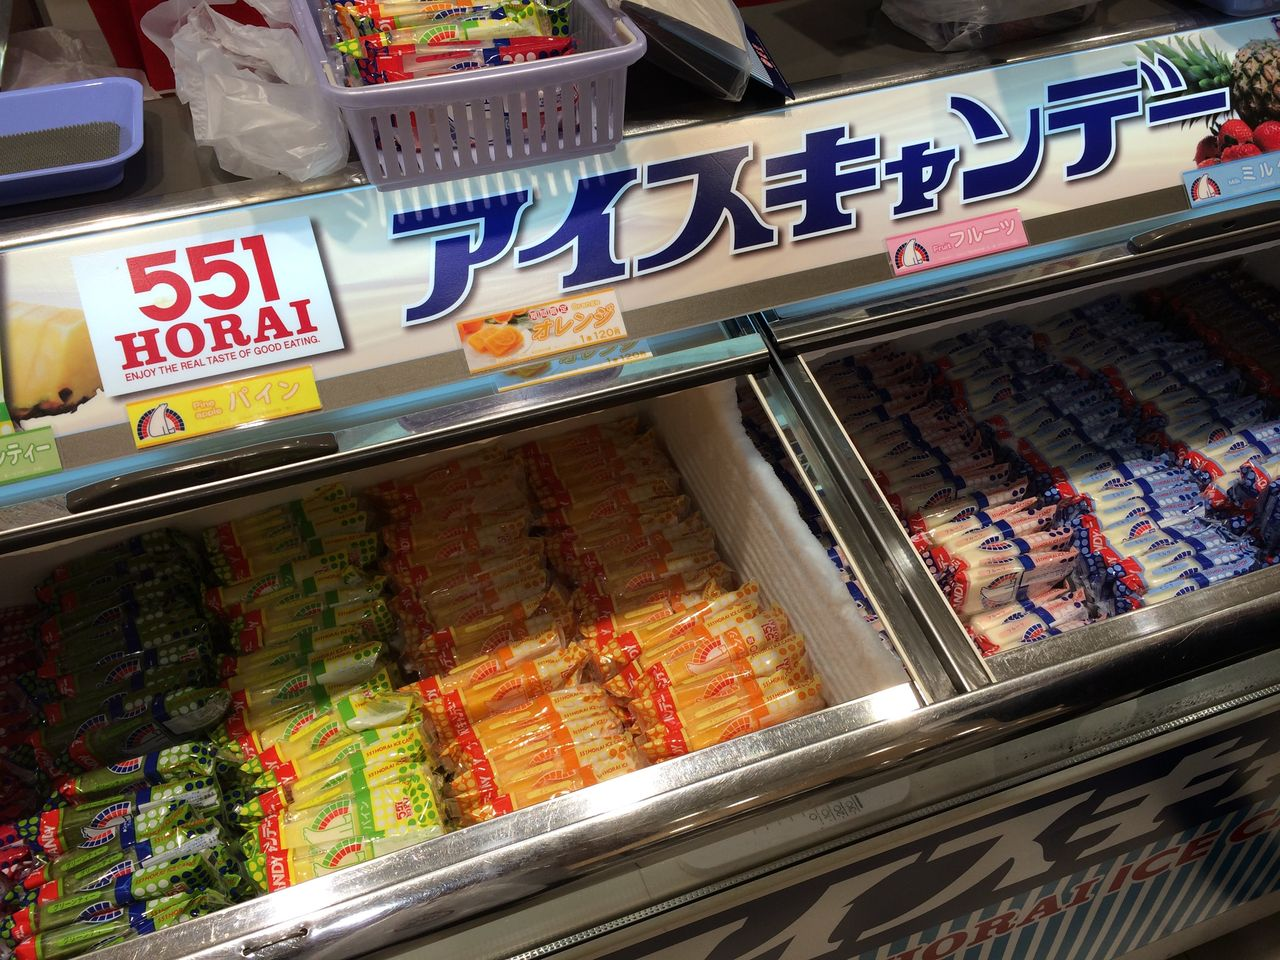 551 horai's ice candy-2